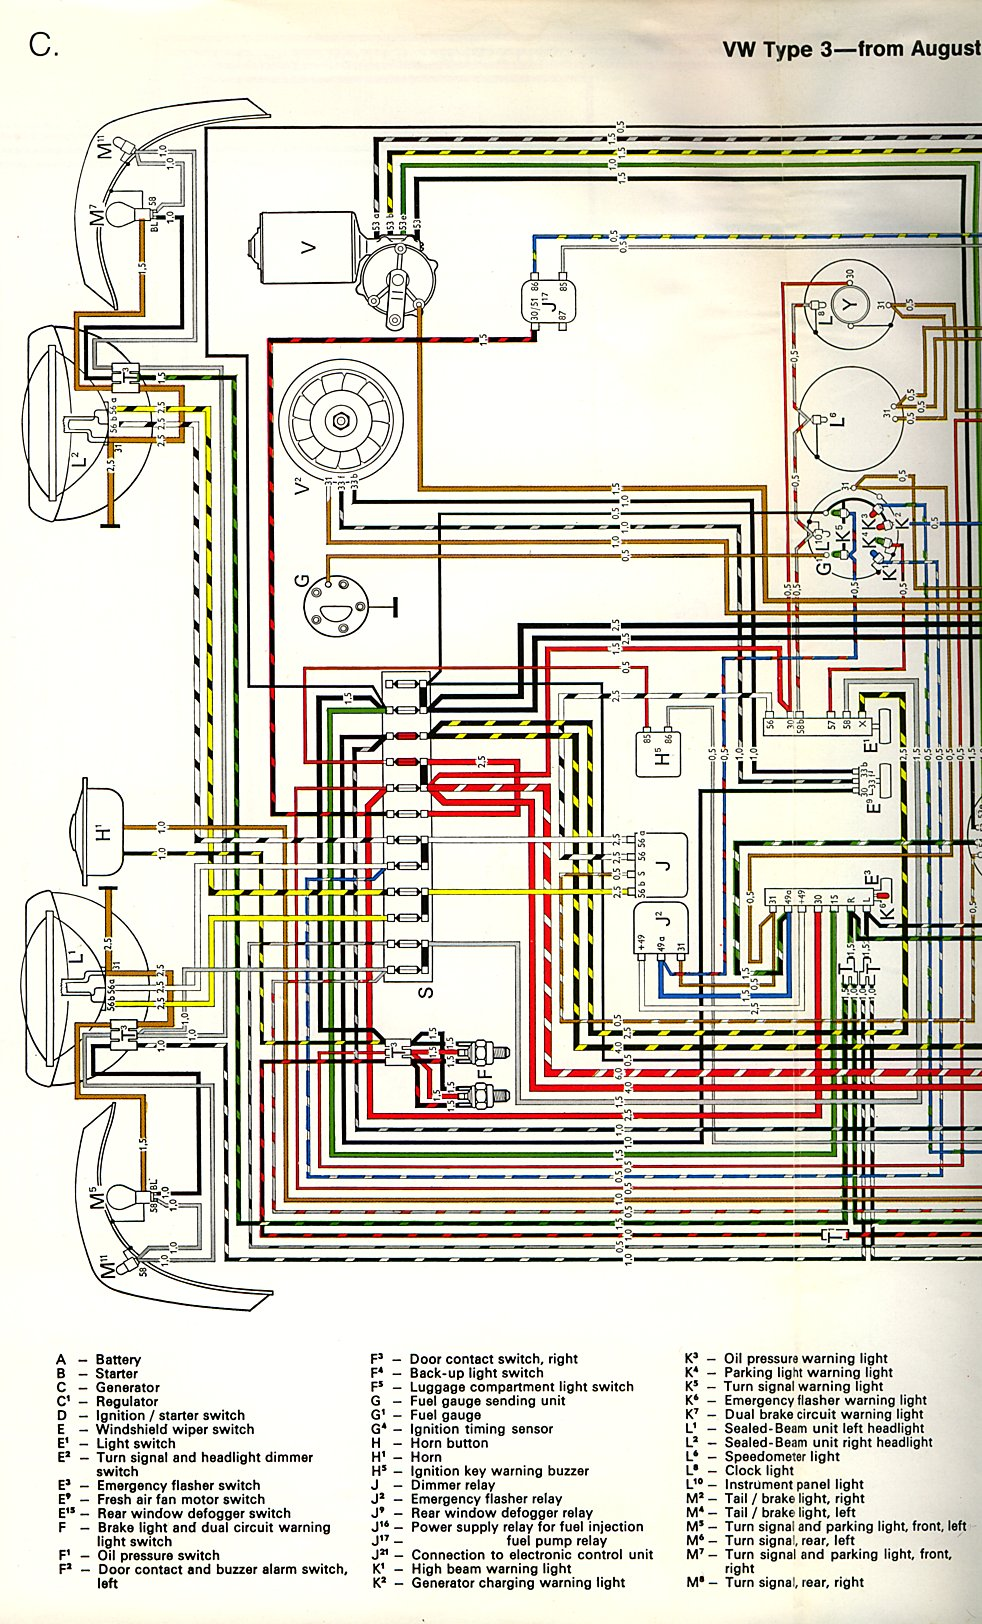 type3_72a thesamba com type 3 wiring diagrams 1970 vw beetle wiring diagram at edmiracle.co